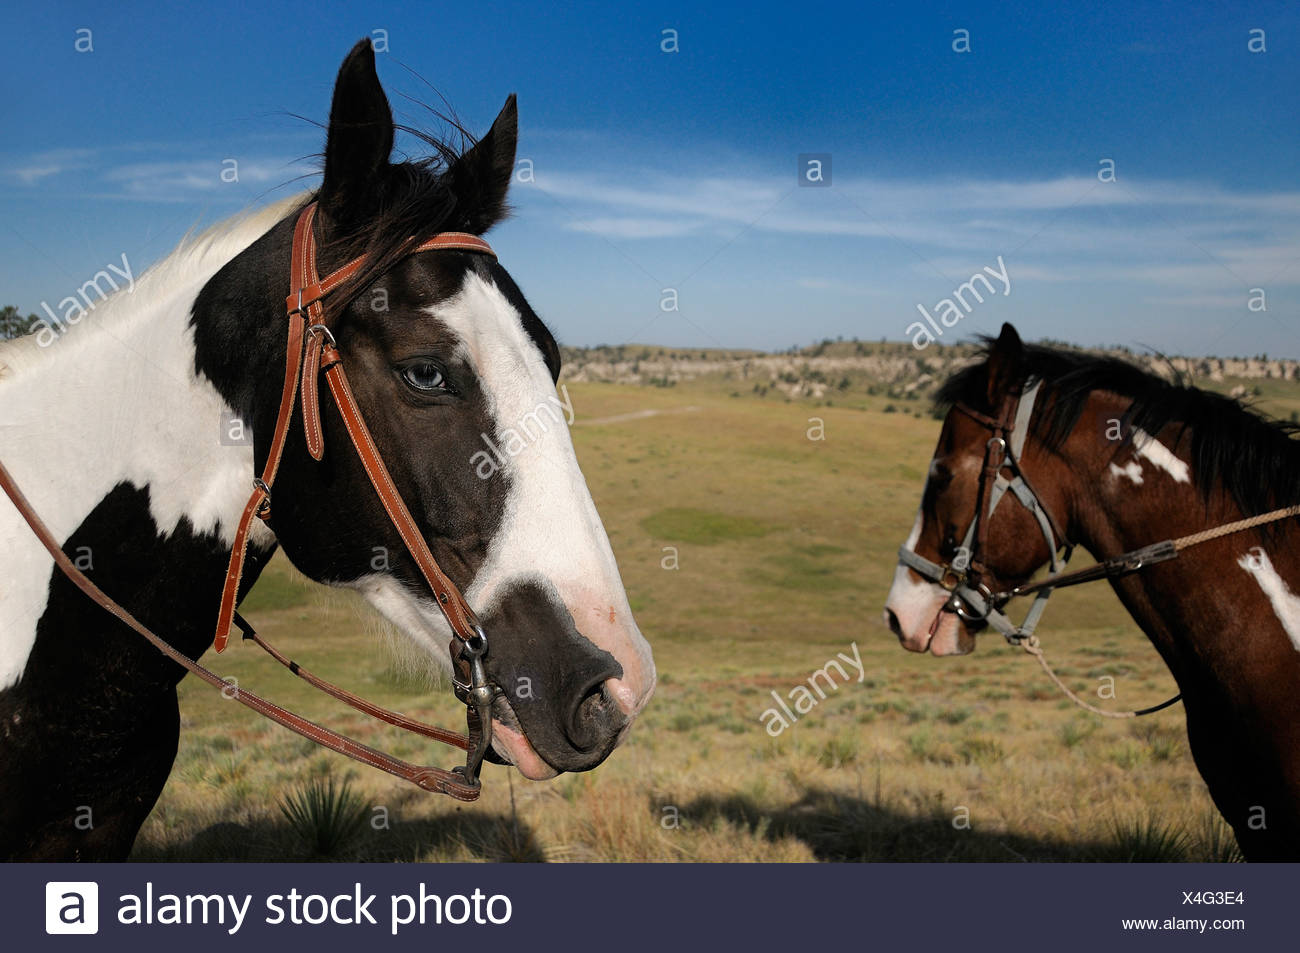 Horses portraits Pine Ridge Pine Ridge Indian Reservation South Dakota USA America United States of America prairie - Stock Image